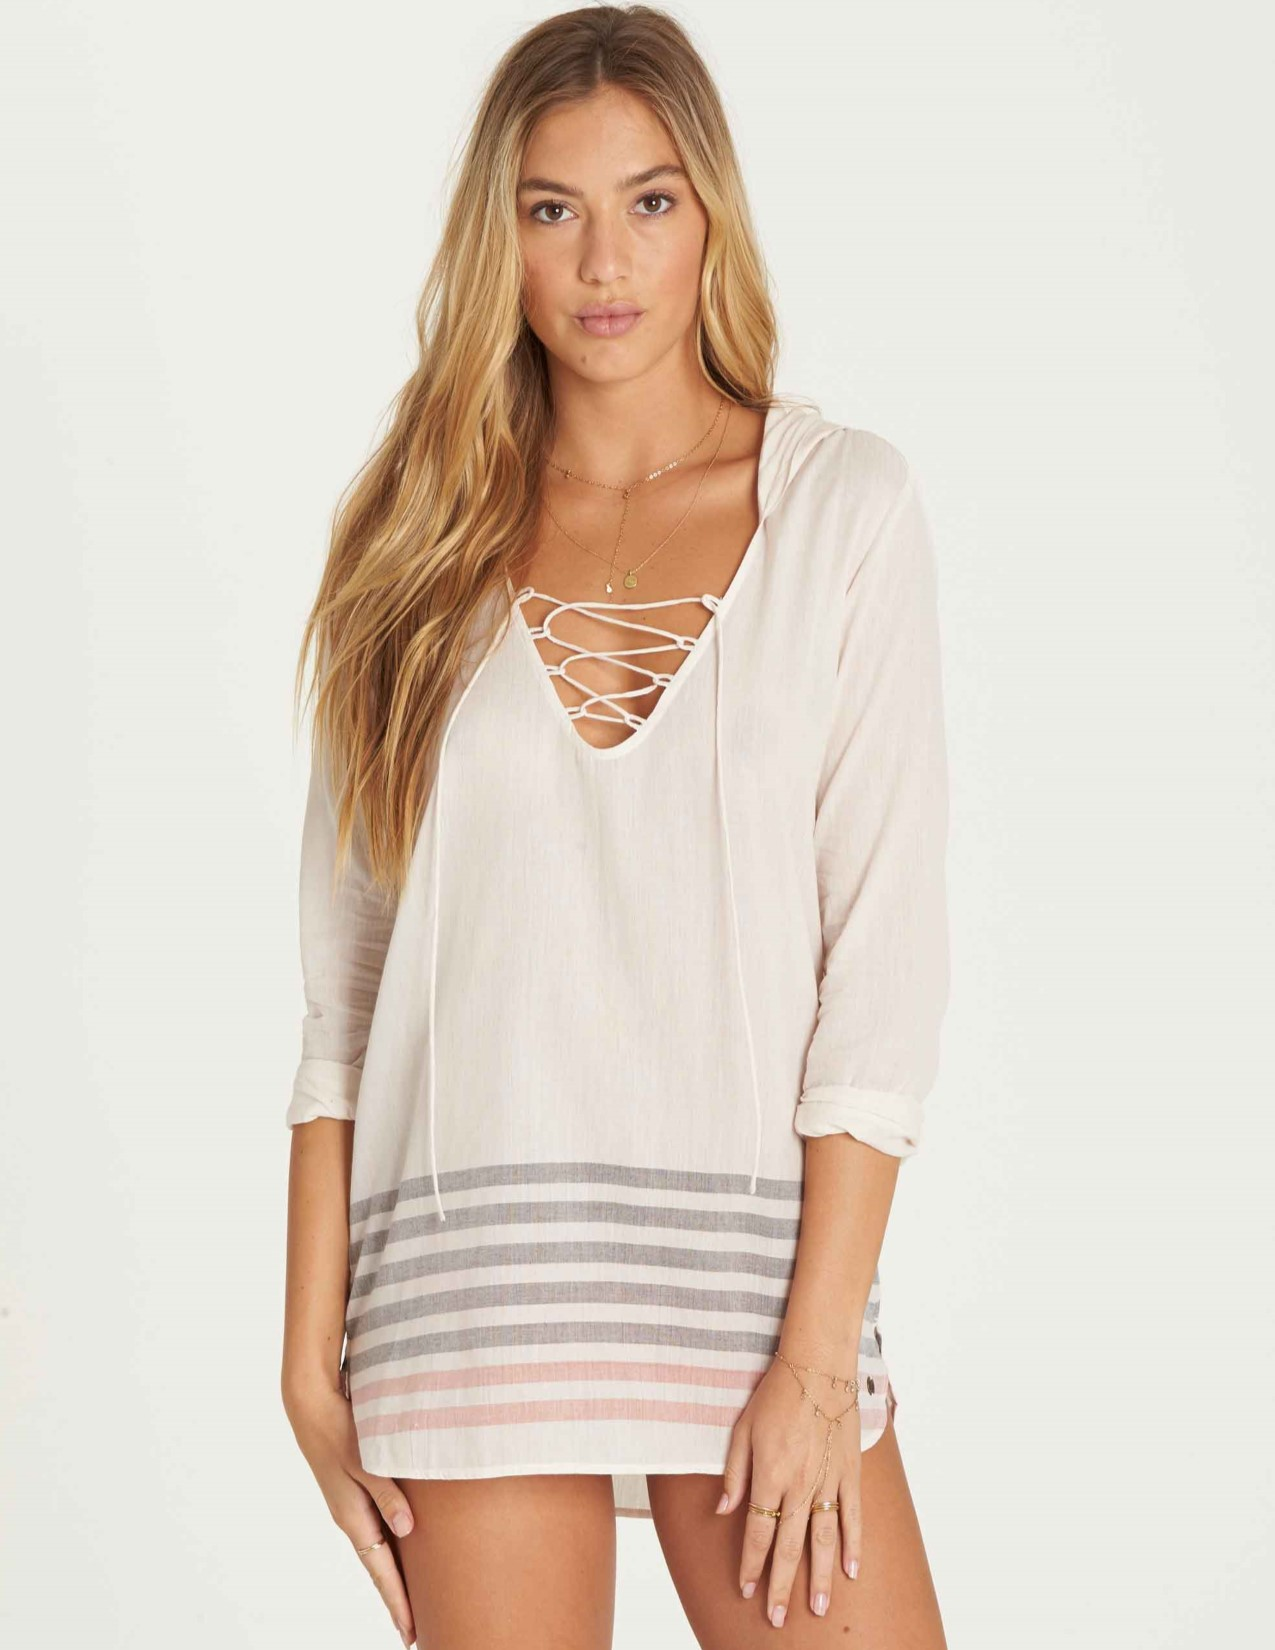 2018 Billabong Coverup